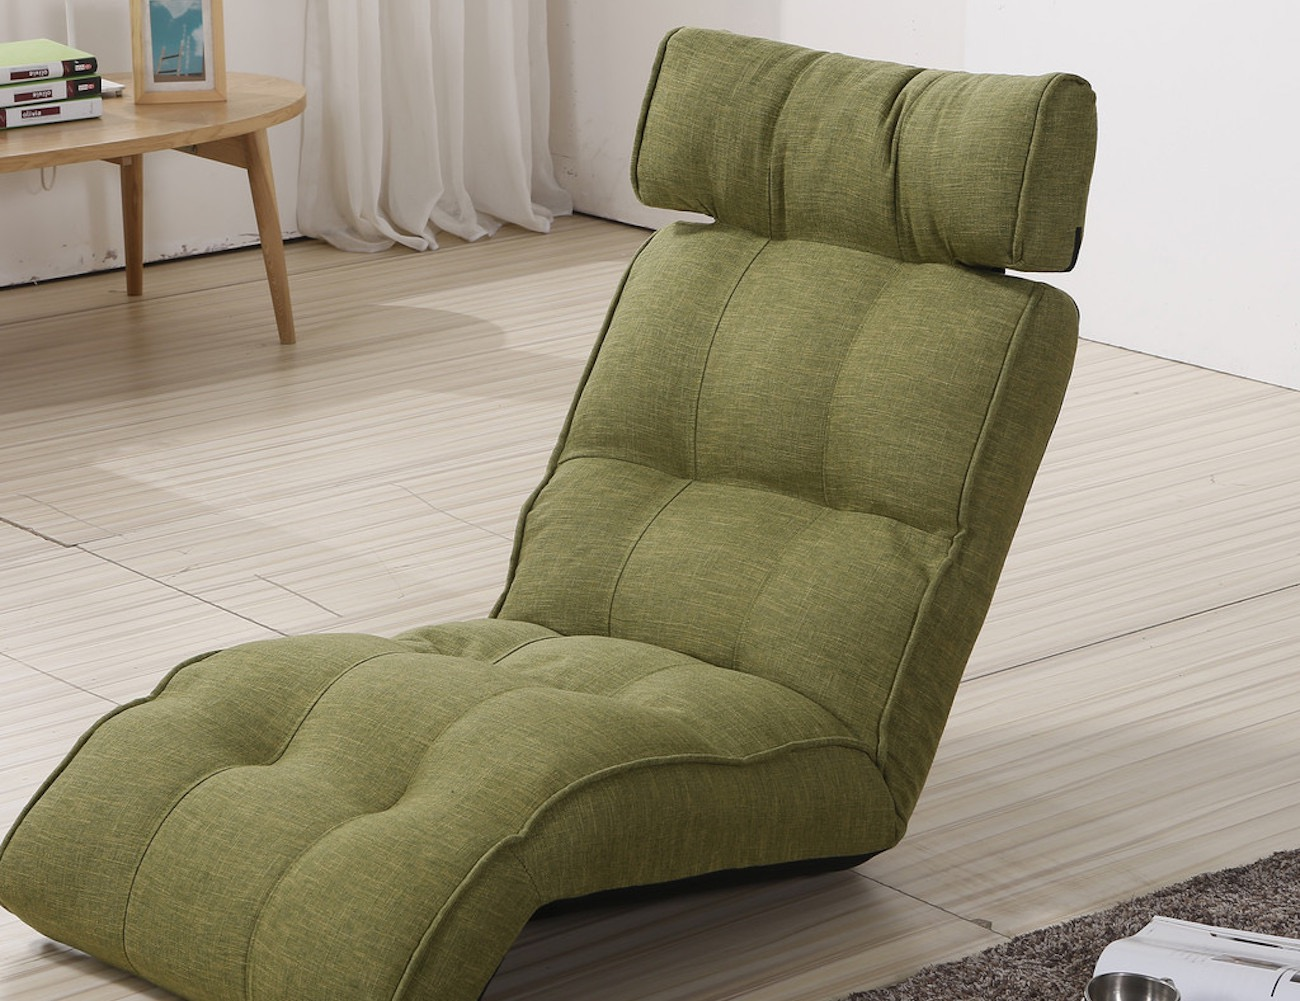 Deluxe Sofa Chair by Cozy Kino